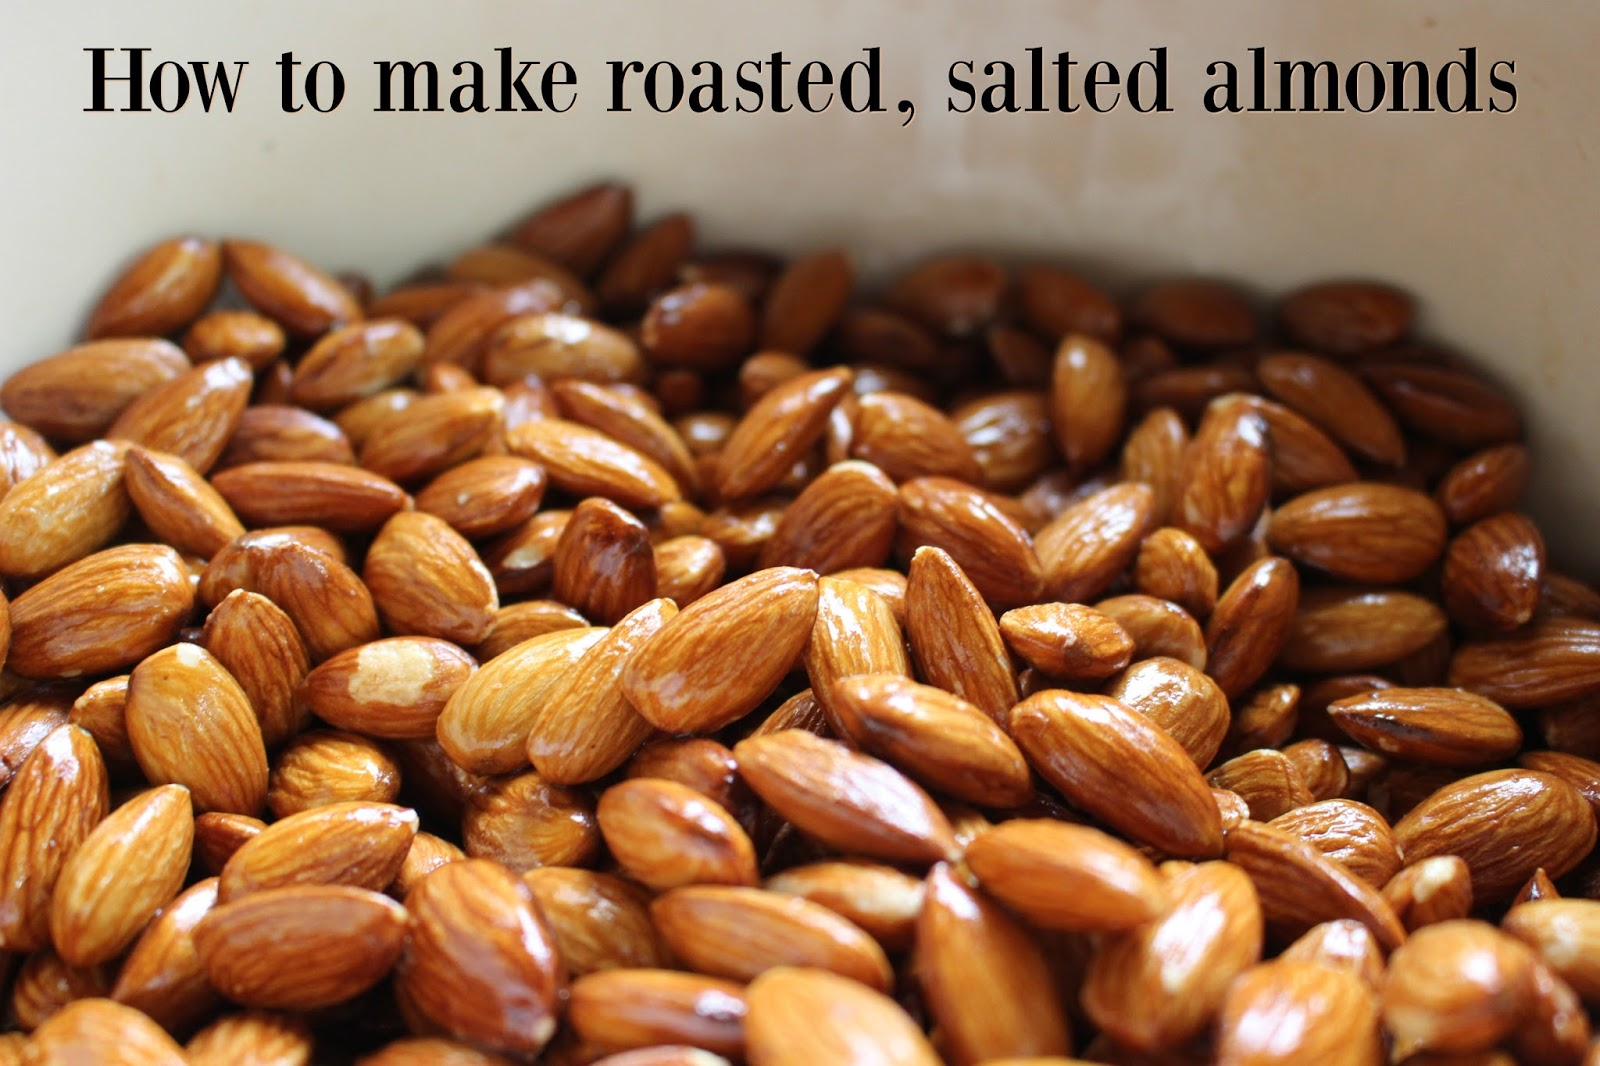 Buy Roasted Salted Almonds in Bulk at Mount Hope Wholesale